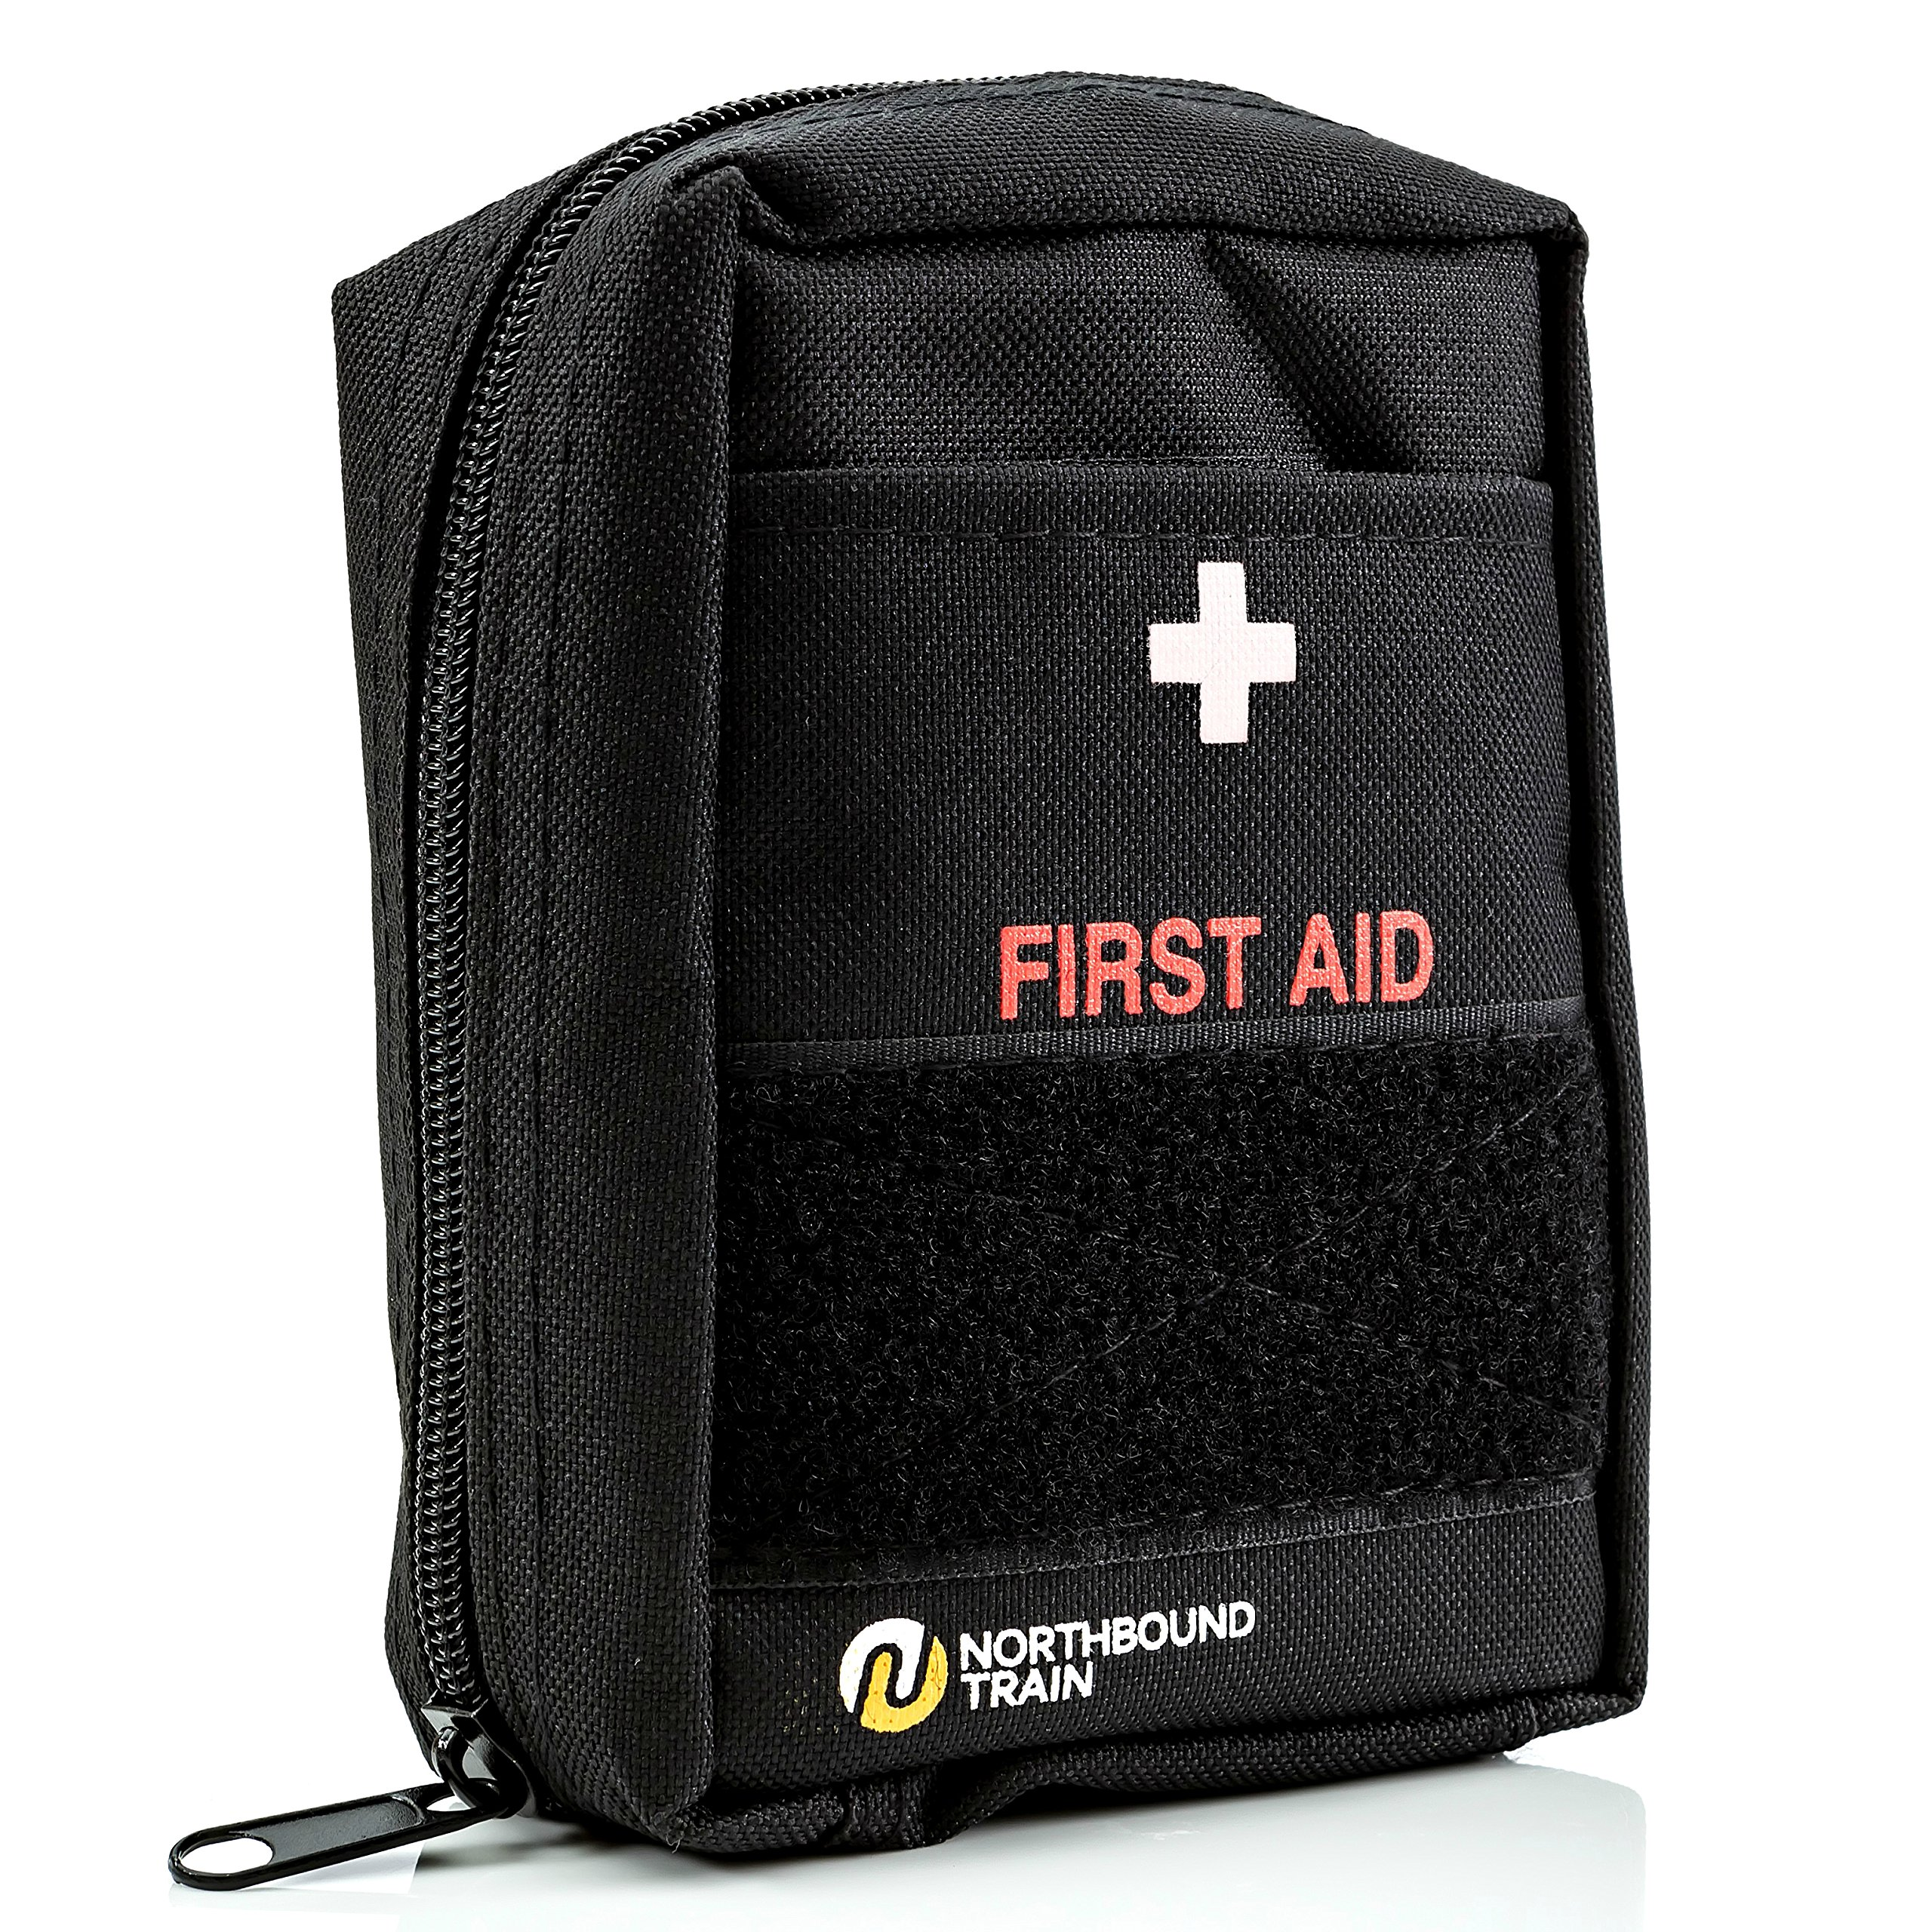 Northbound Train First Aid Kit, Fully Stocked - IFAK - Premium Contents for Tactical First Aid, Camping, Travel, and Hiking